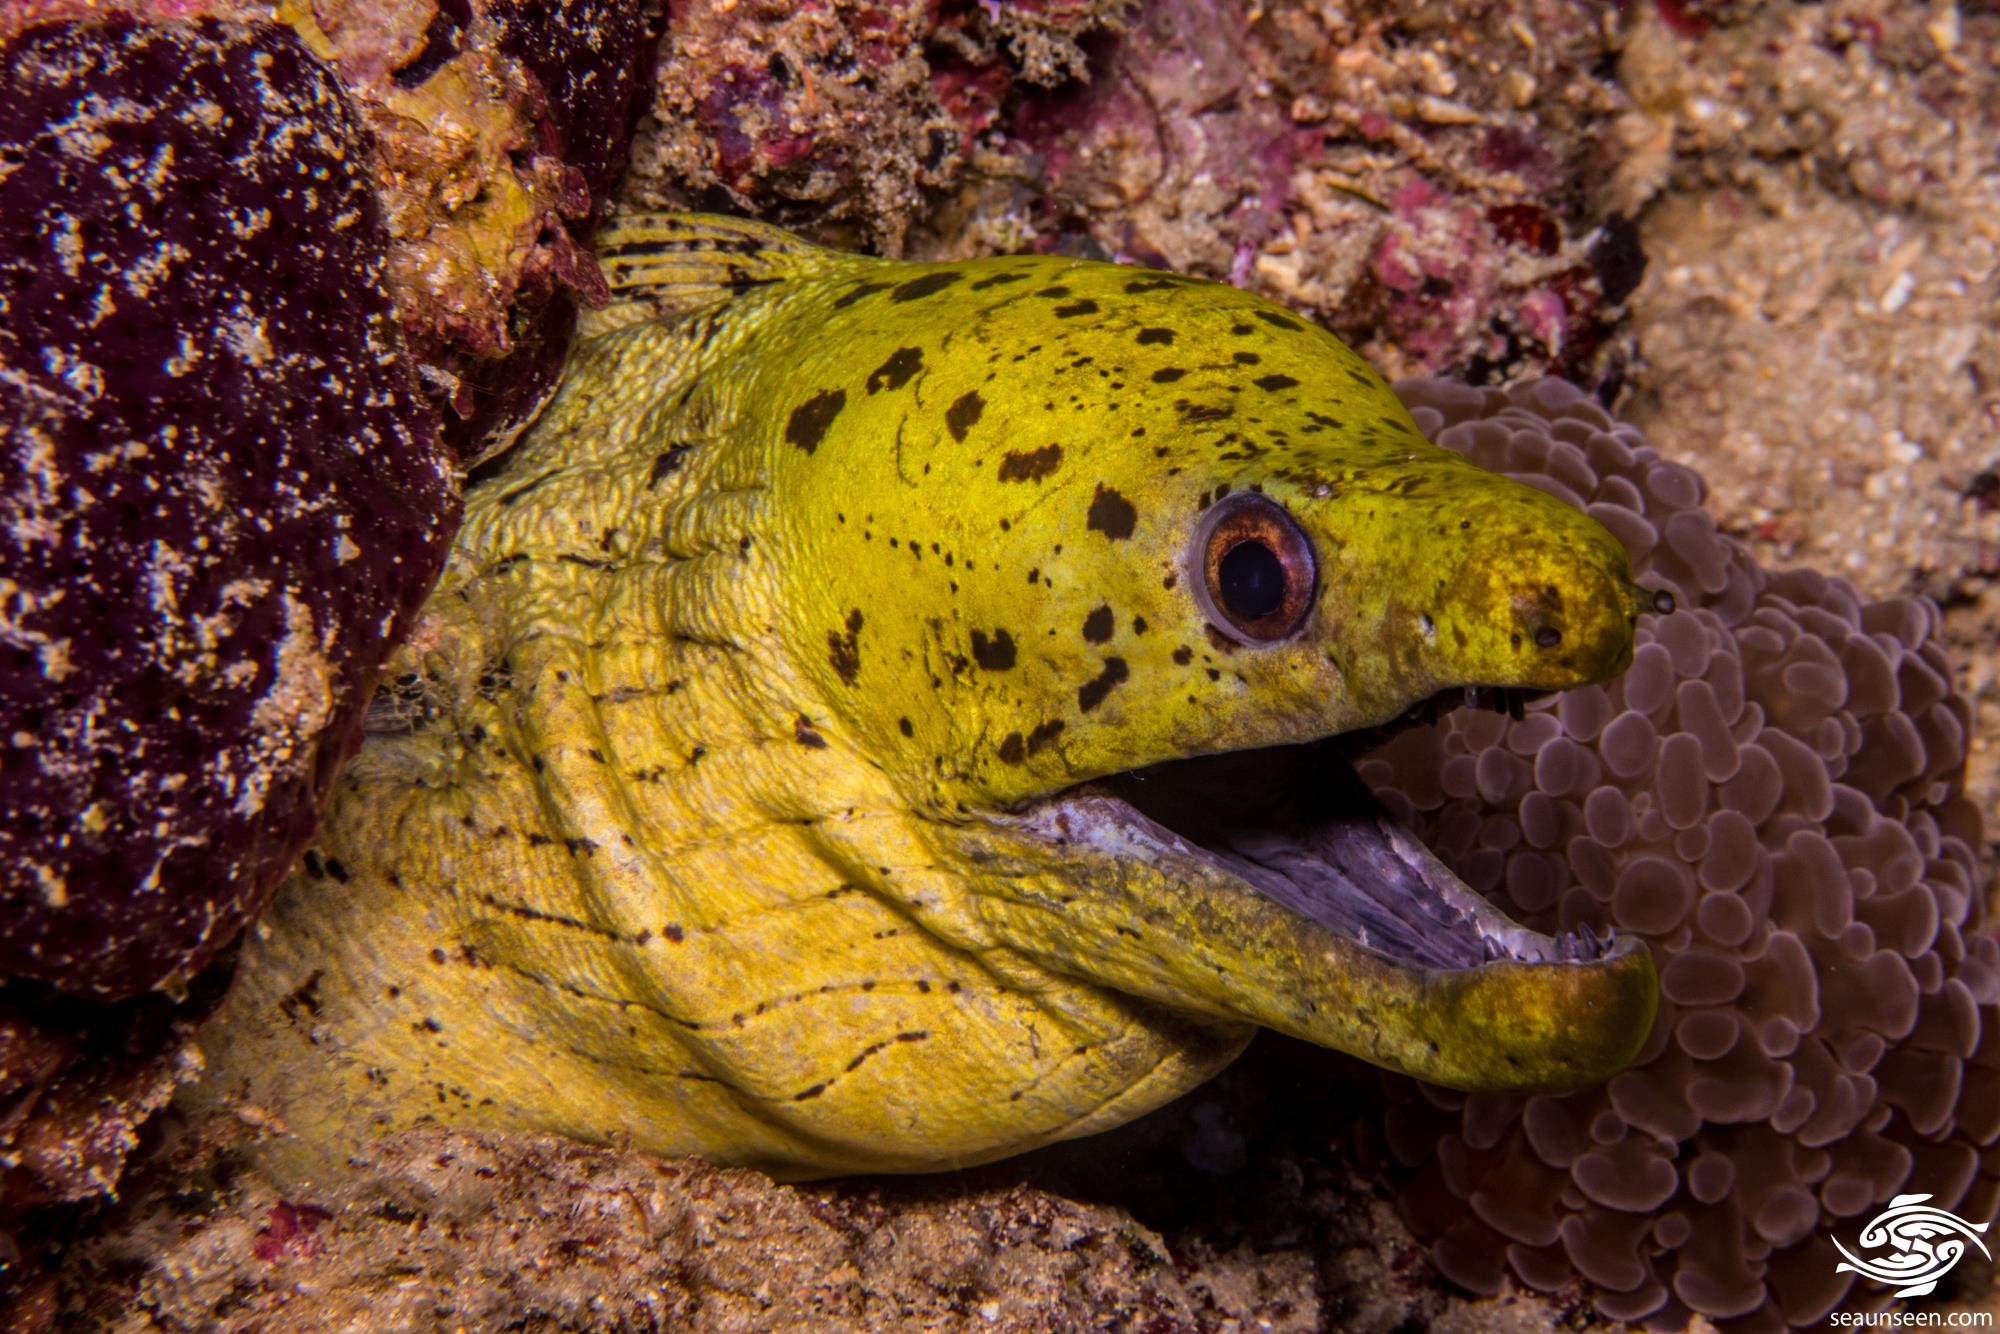 Fimbriated Moray Eel (Gymnothorax fimbriatus) is also known as the spot-face moray, the darkspotted moray and the Cheetah Moray